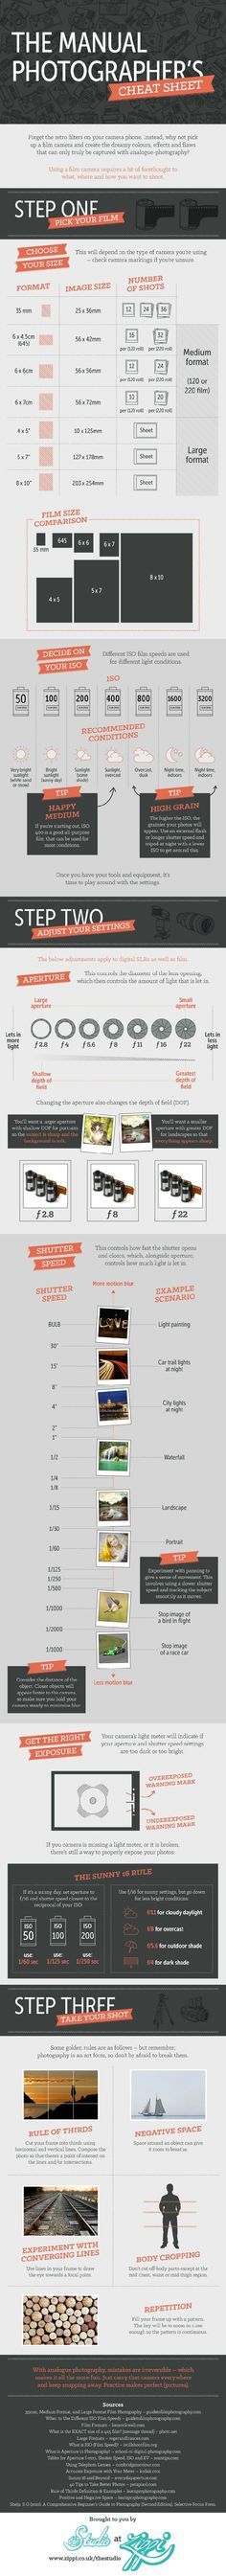 manual photography infographic